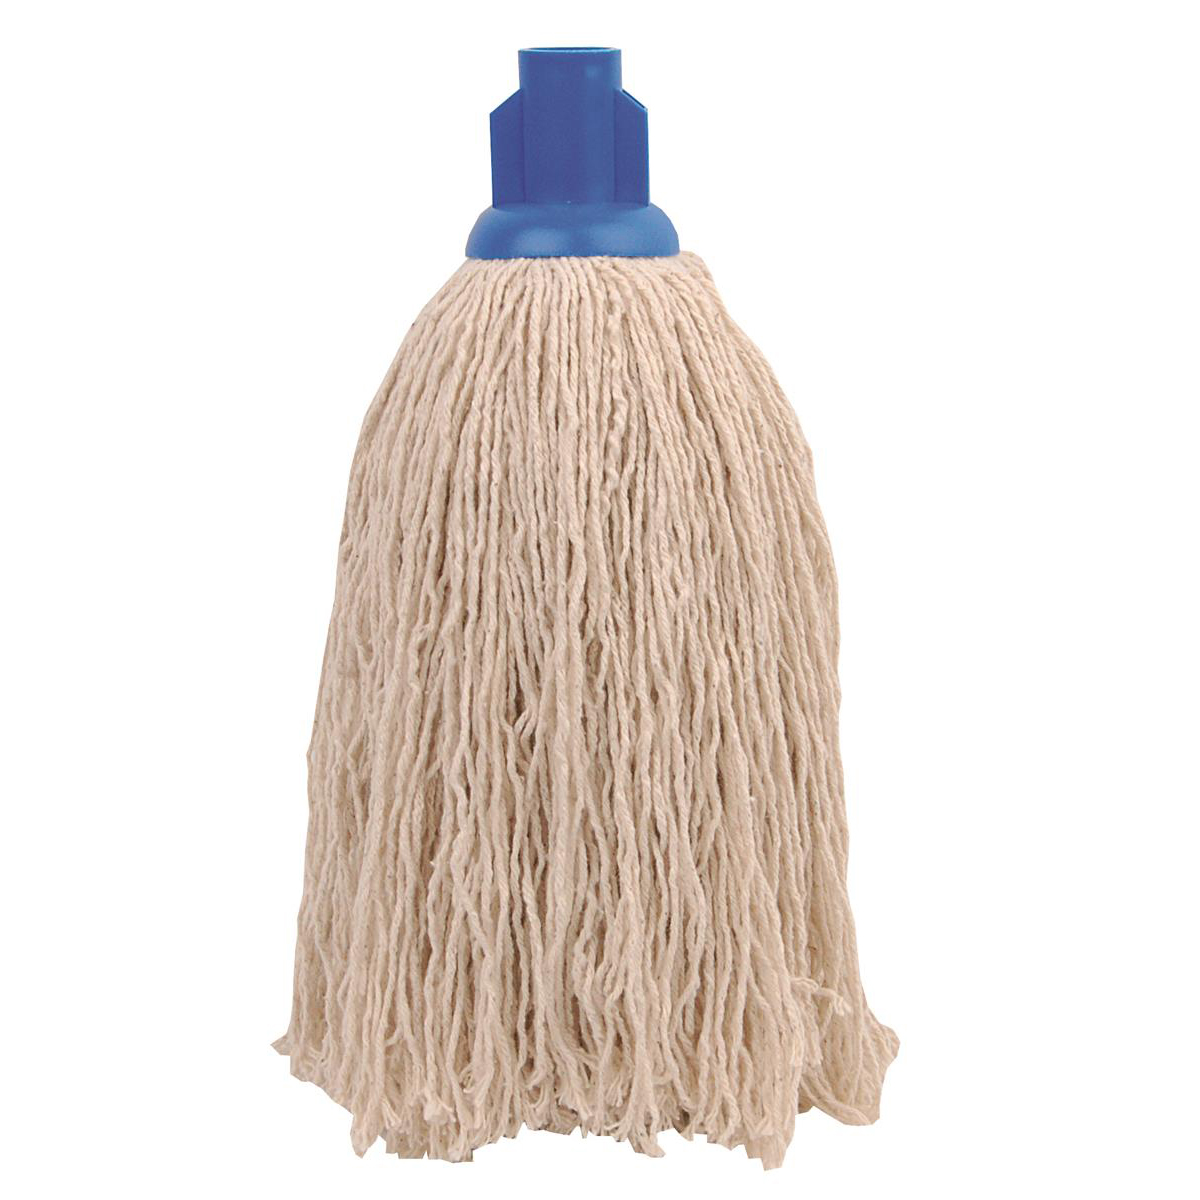 Robert Scott & Sons Socket Mop for Rough Surfaces PY 16oz Blue Ref 101858BLUE [Pack 10]